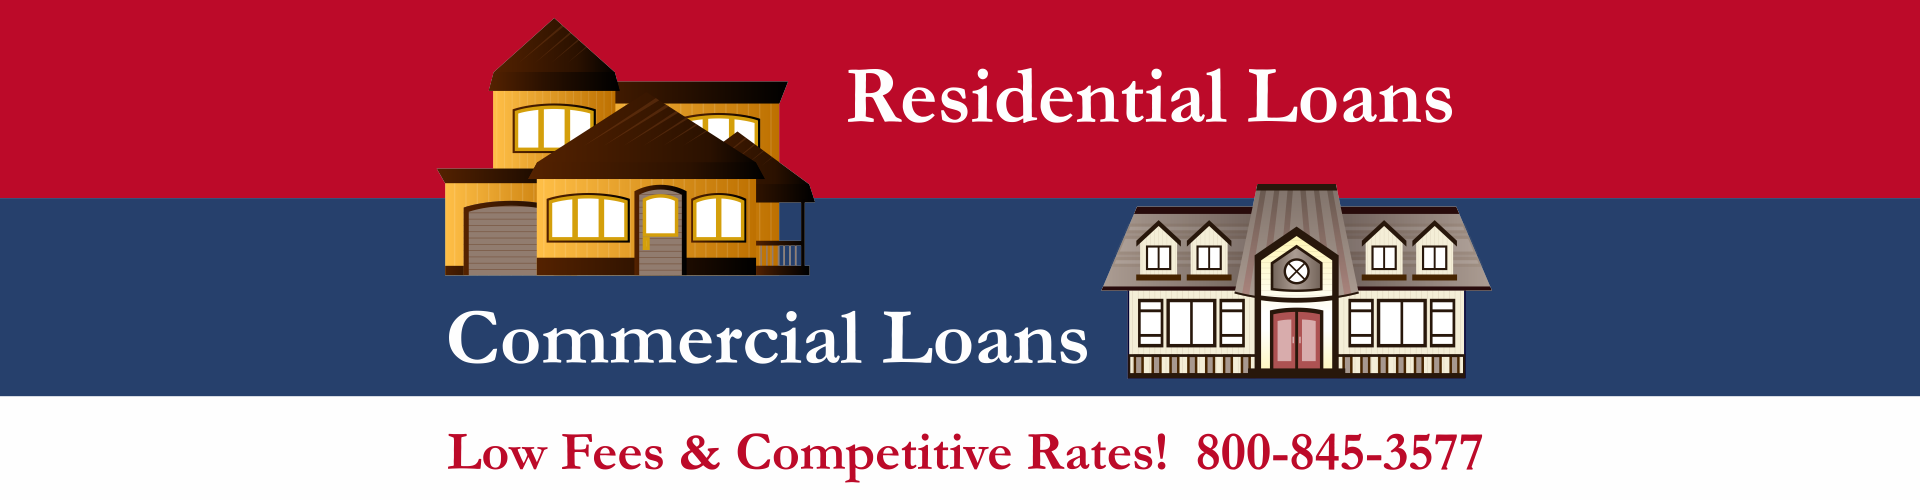 Commercial & Residential Loans